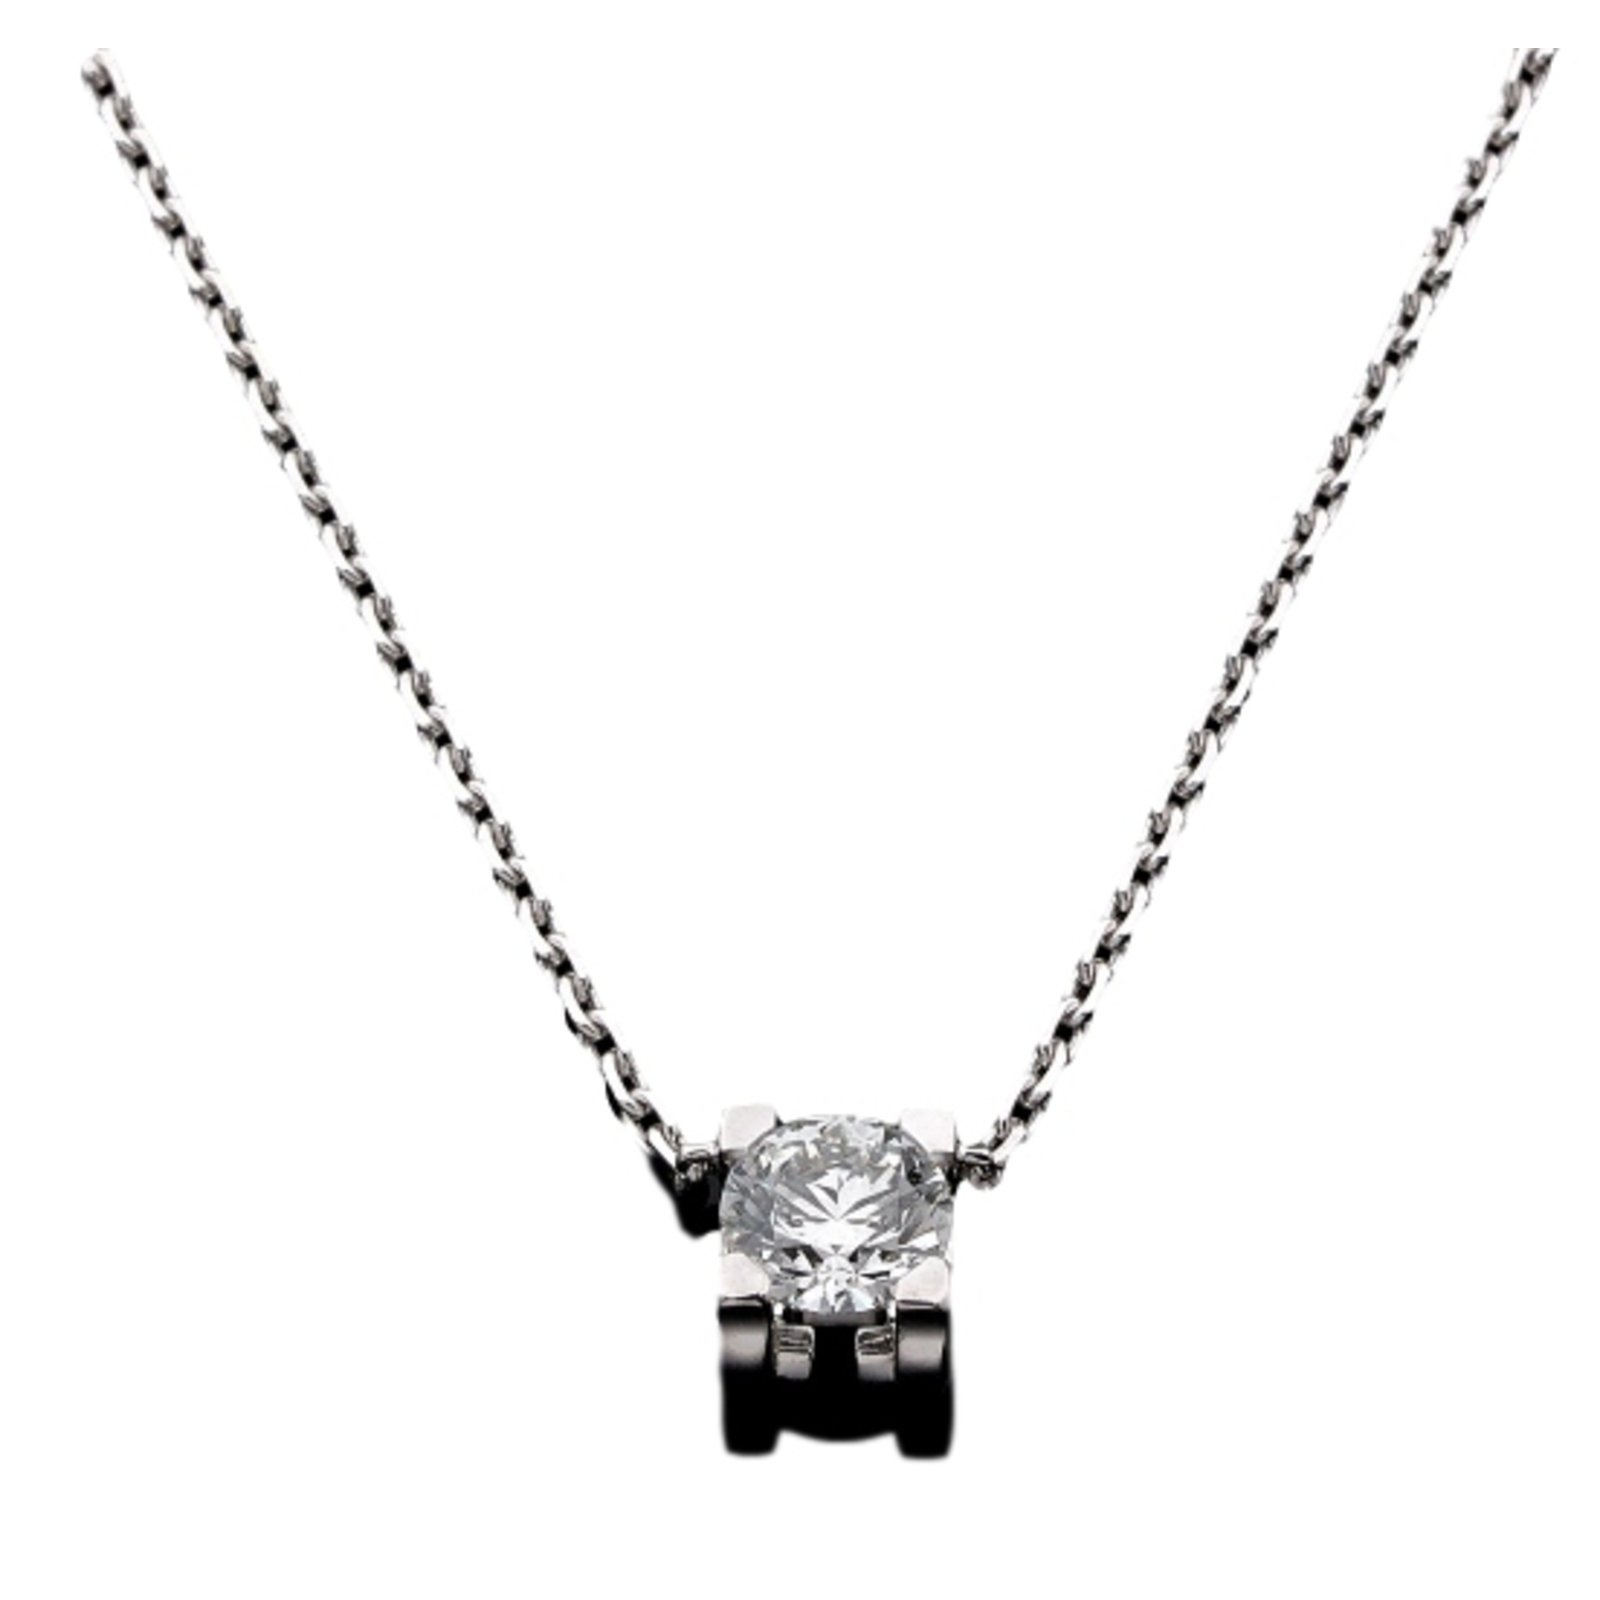 Necklace C De Cartier 18045 in addition Biao Immagini Babbo Natale Sulla Slitta Da Colorare likewise Estate Jewelry Gifts Feat Cartier together with Montre Homme Cartier likewise Id J 1684503. on cartier pasha